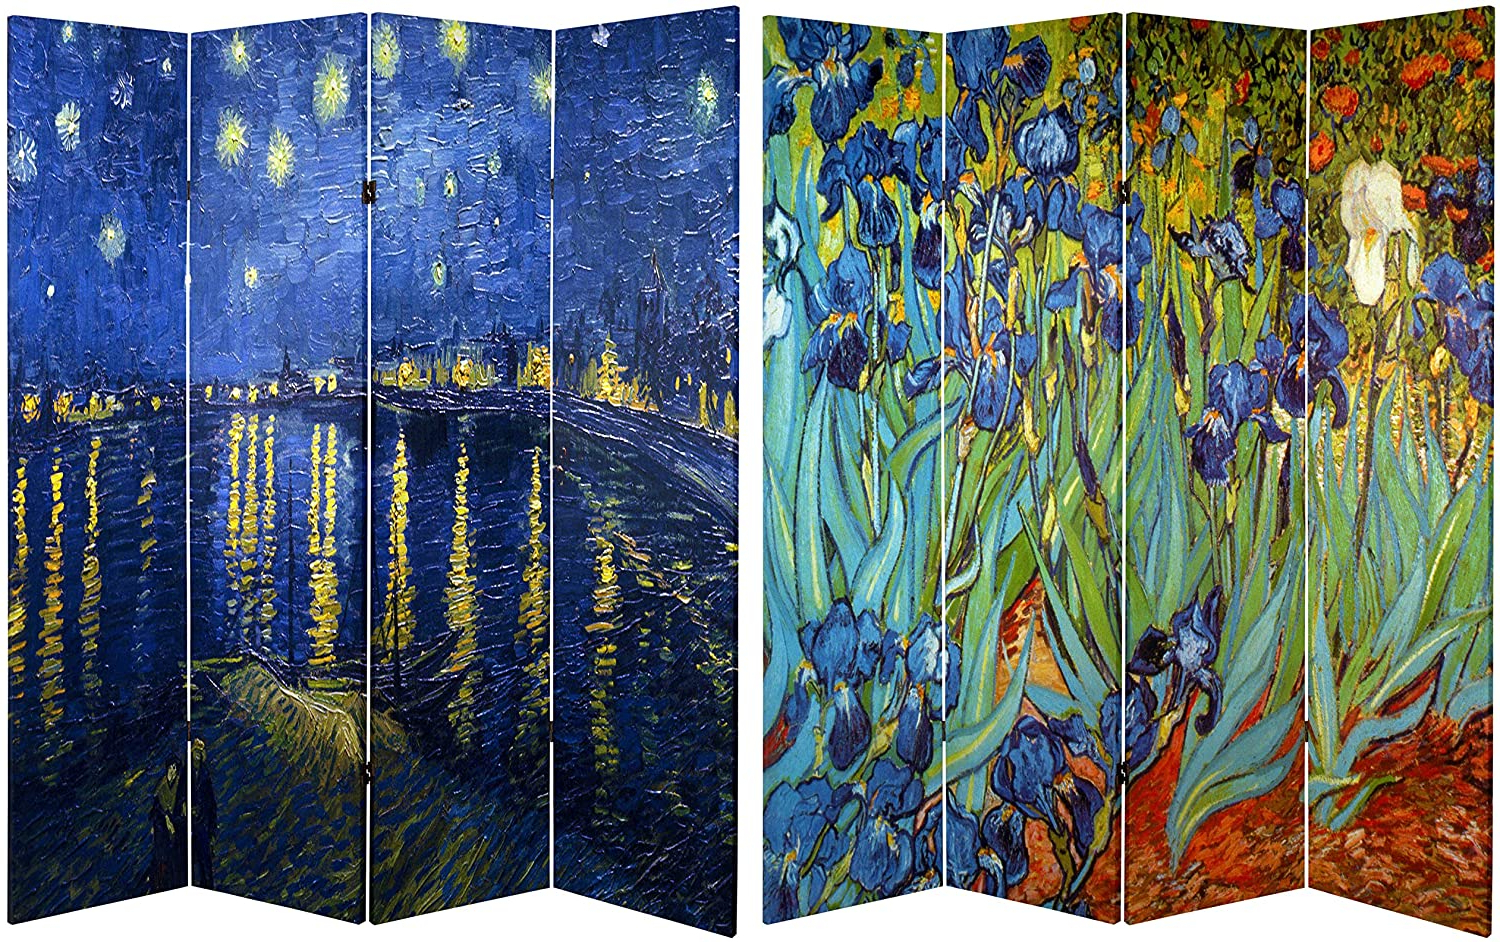 Blended Fabric Van Gogh Starry Night Over The Rhone Wall Hangings Inside Preferred Oriental Furniture Classic Impressionist Extra Large Wall Art Prints, 6 Feet Van Gogh Canvas Room Divider, Irises/starry Night, Rhone (View 16 of 20)